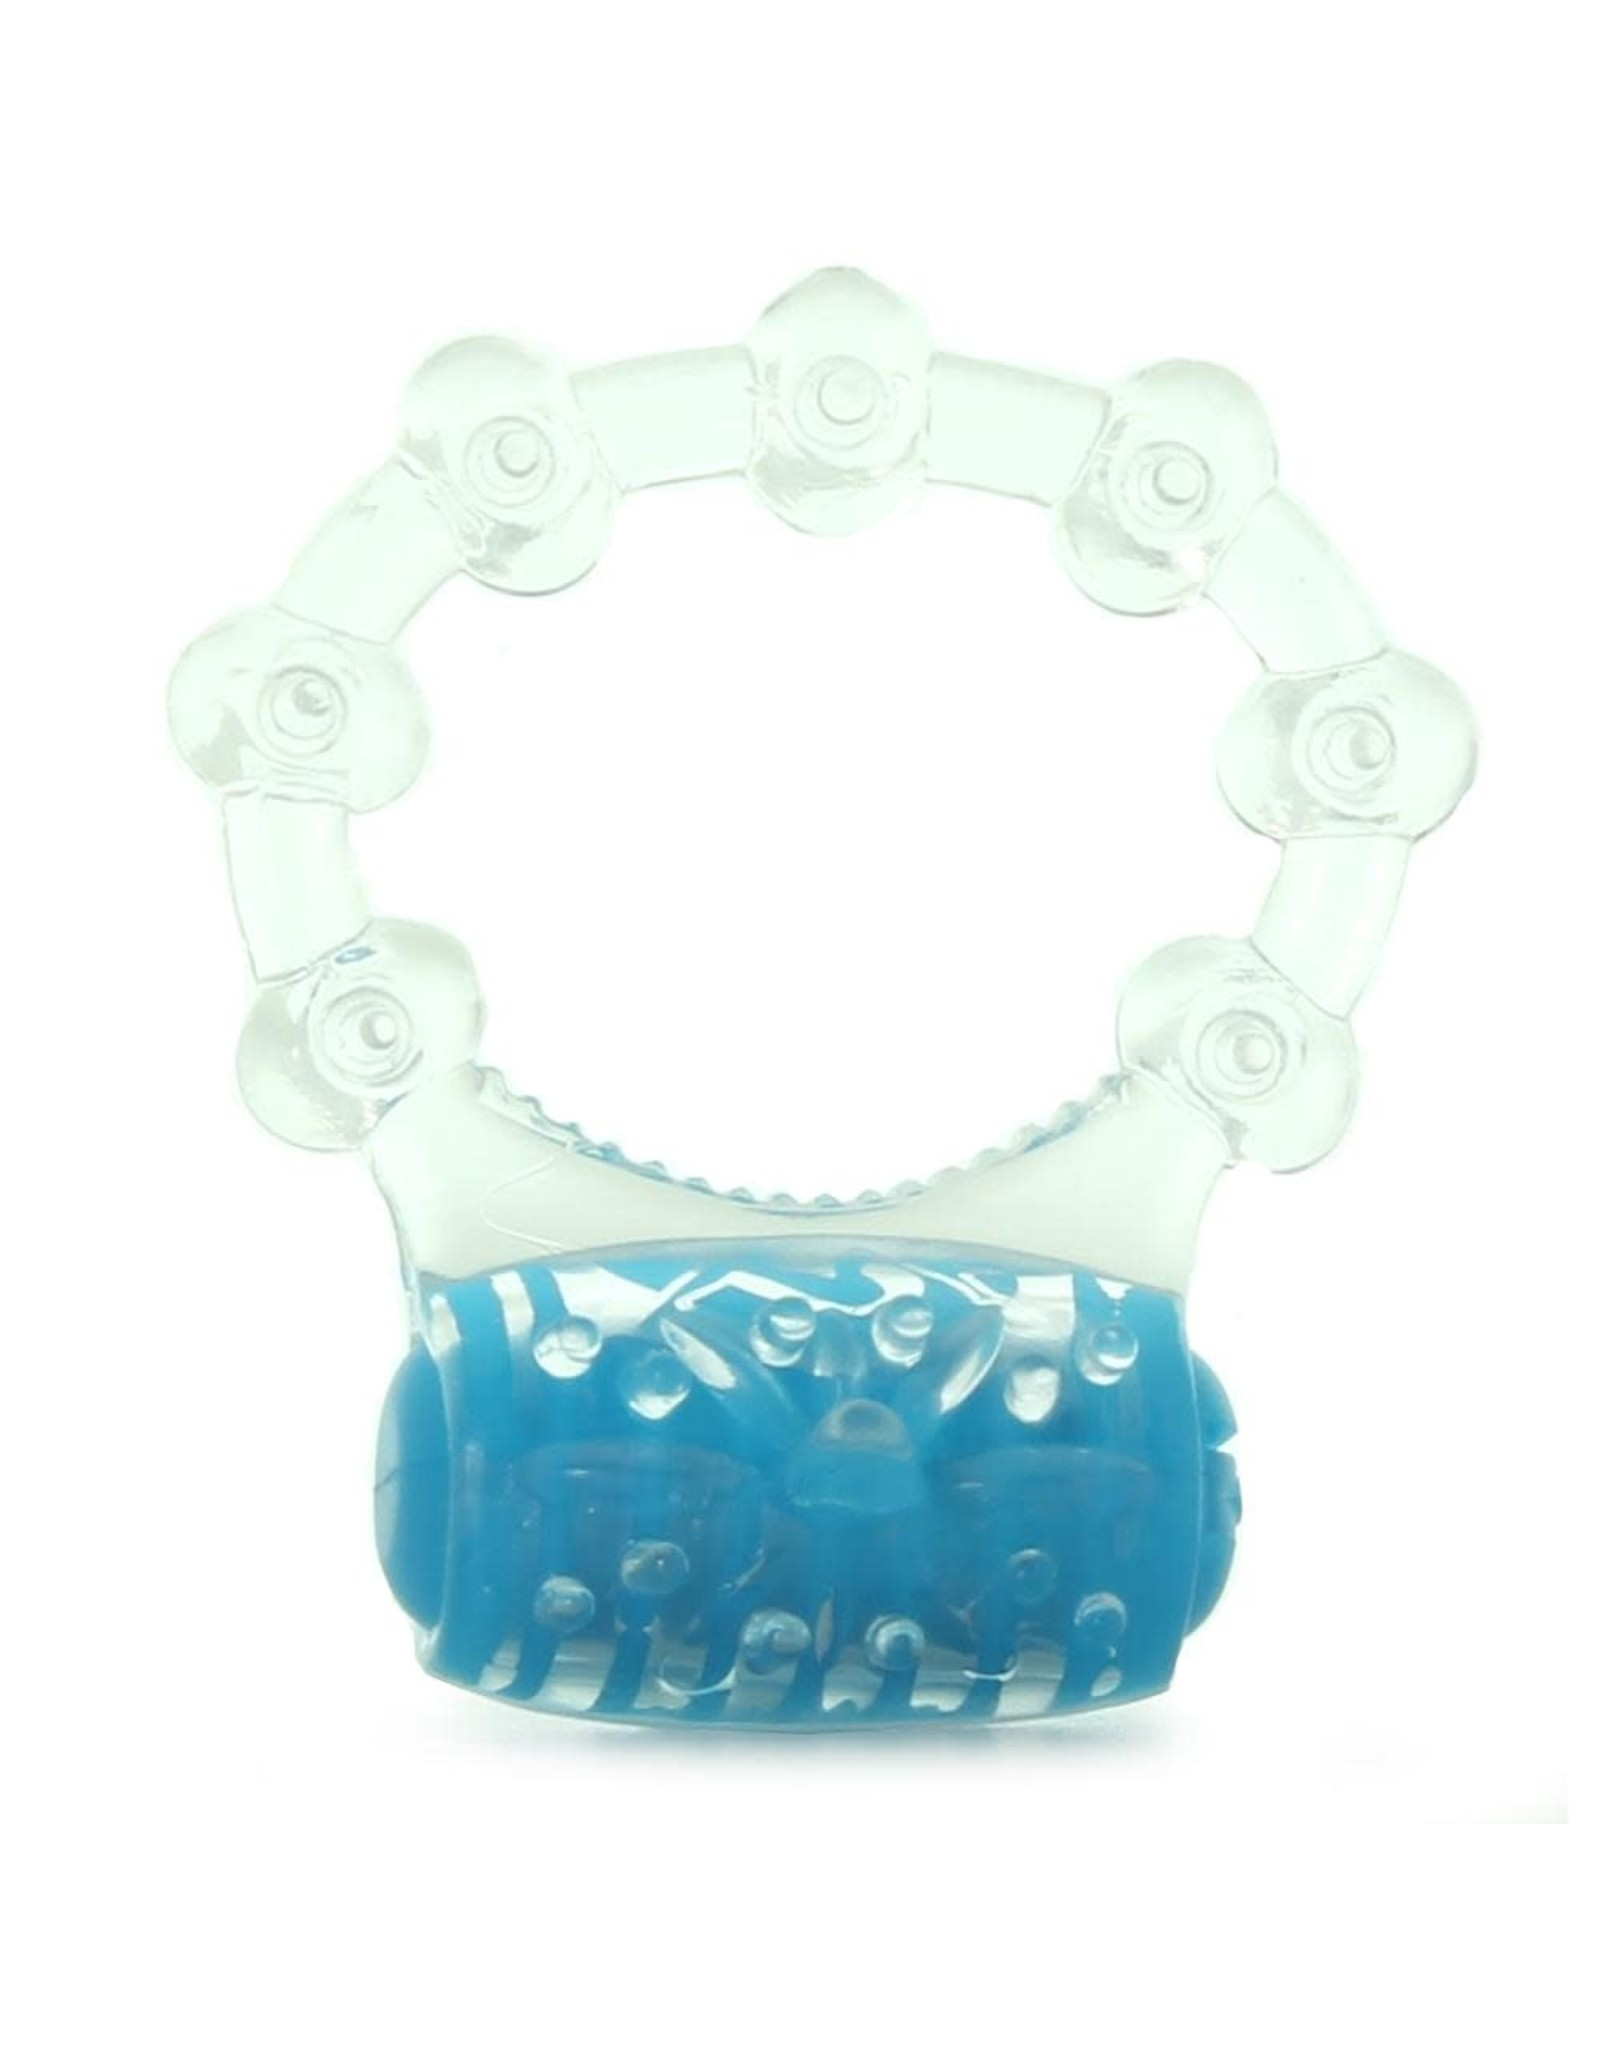 SCREAMING O - COLOR POP QUICKIE VIBE RING - BLUE